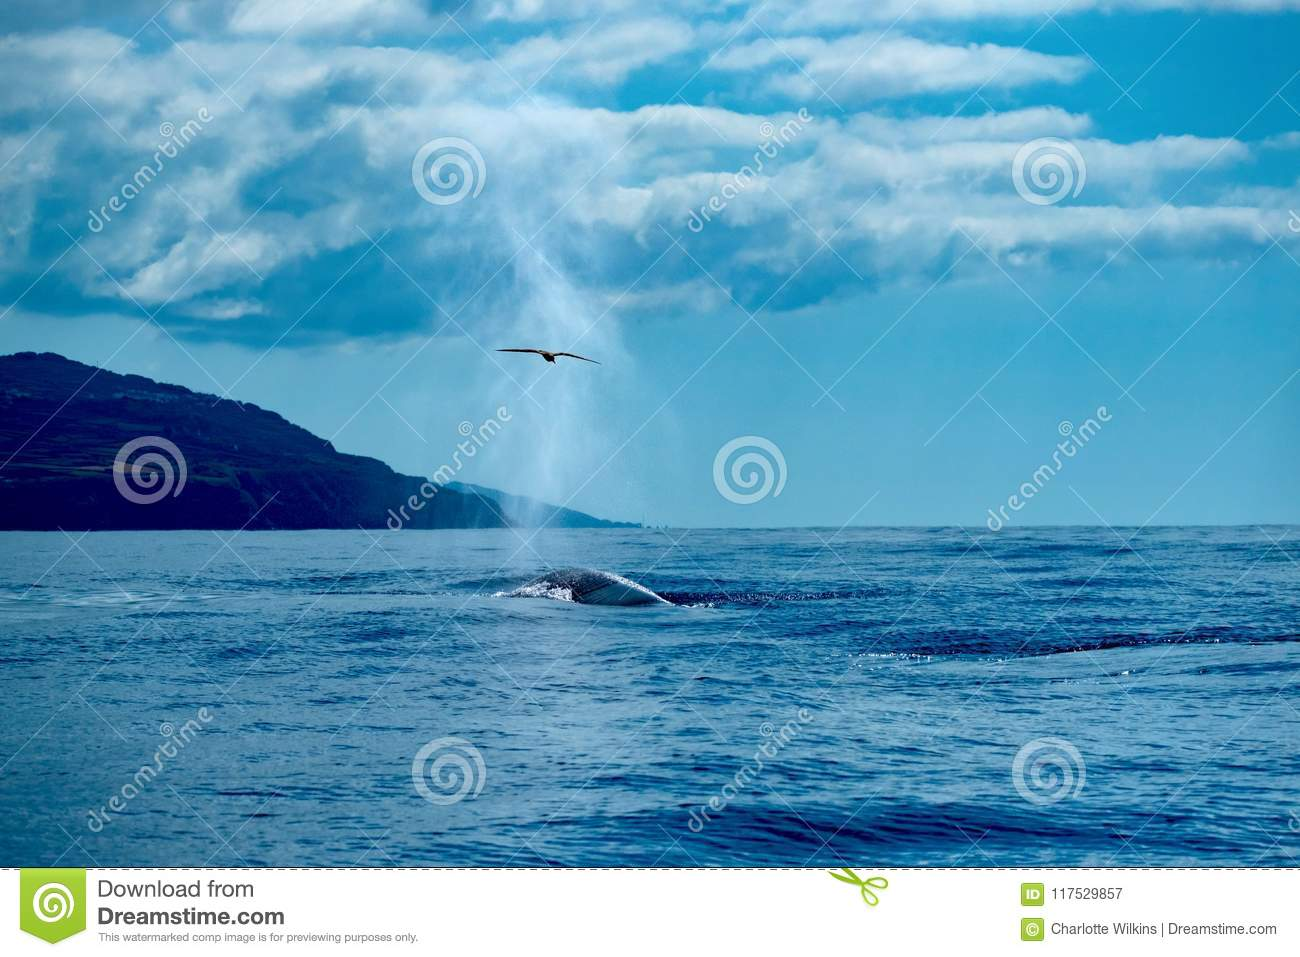 A fin whale surfaces catching a shearwater with its spout